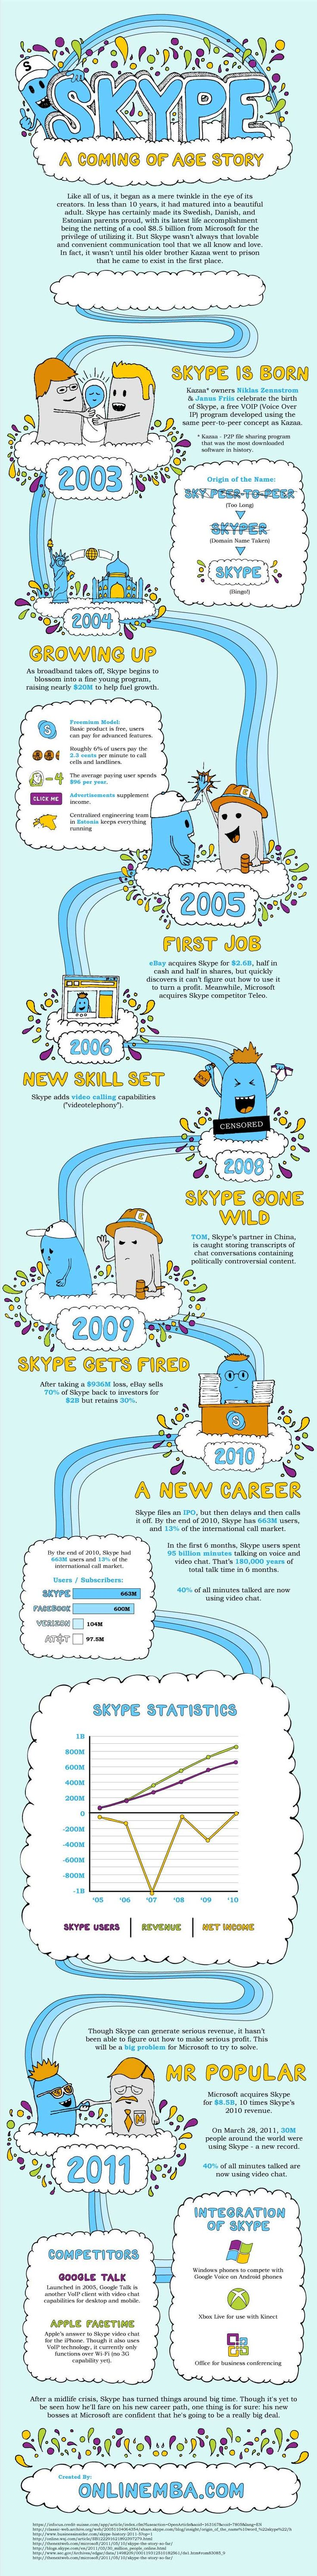 Skype – A Coming of Age Story: Stories Infographic, Skype Infographic, Latest Infographic, People, Medium, Tech Infographic, Business Infographic, Age Stories, Mobile